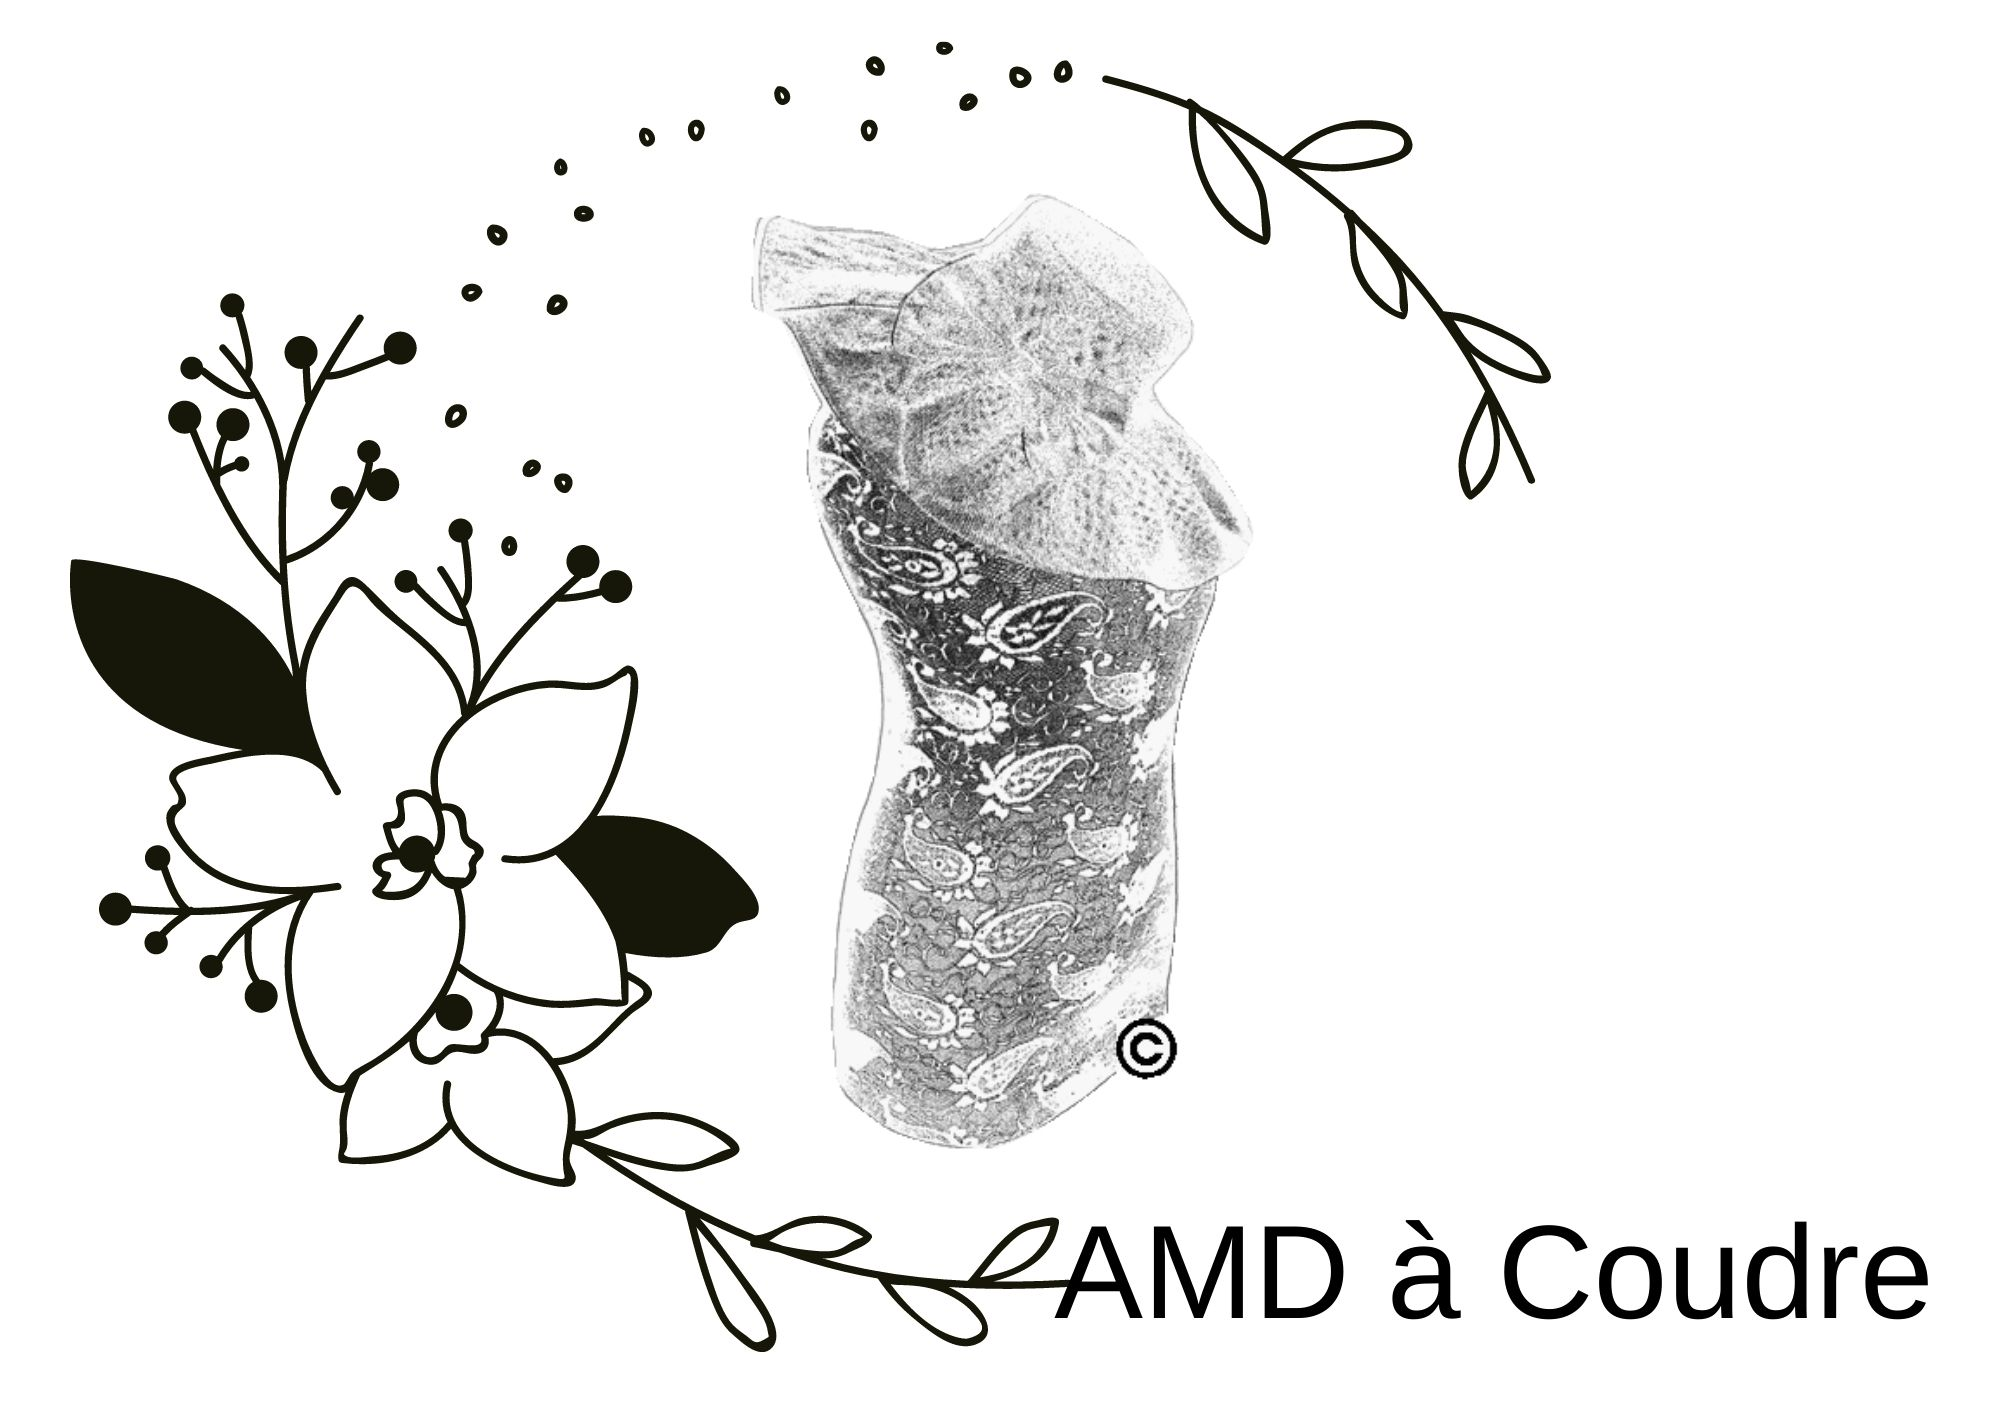 AMD à Coudre, Broderie, Couture, Personnalisation